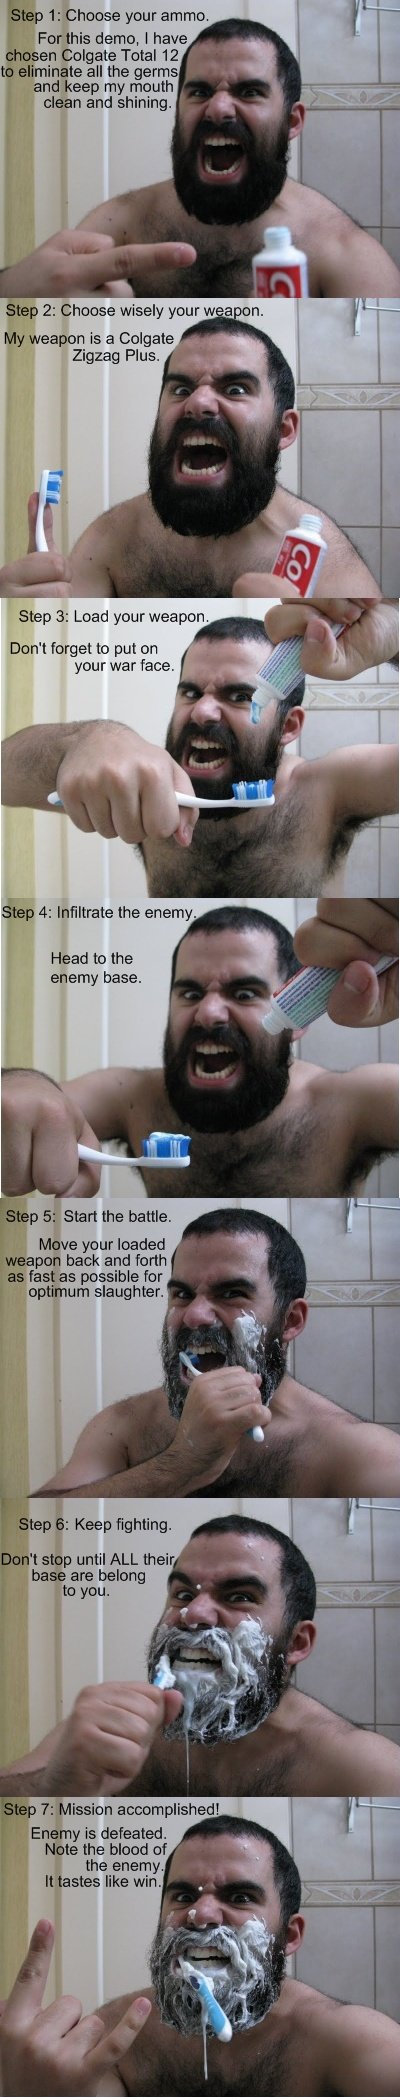 hiyrh - how to brush your teeth like a spartan